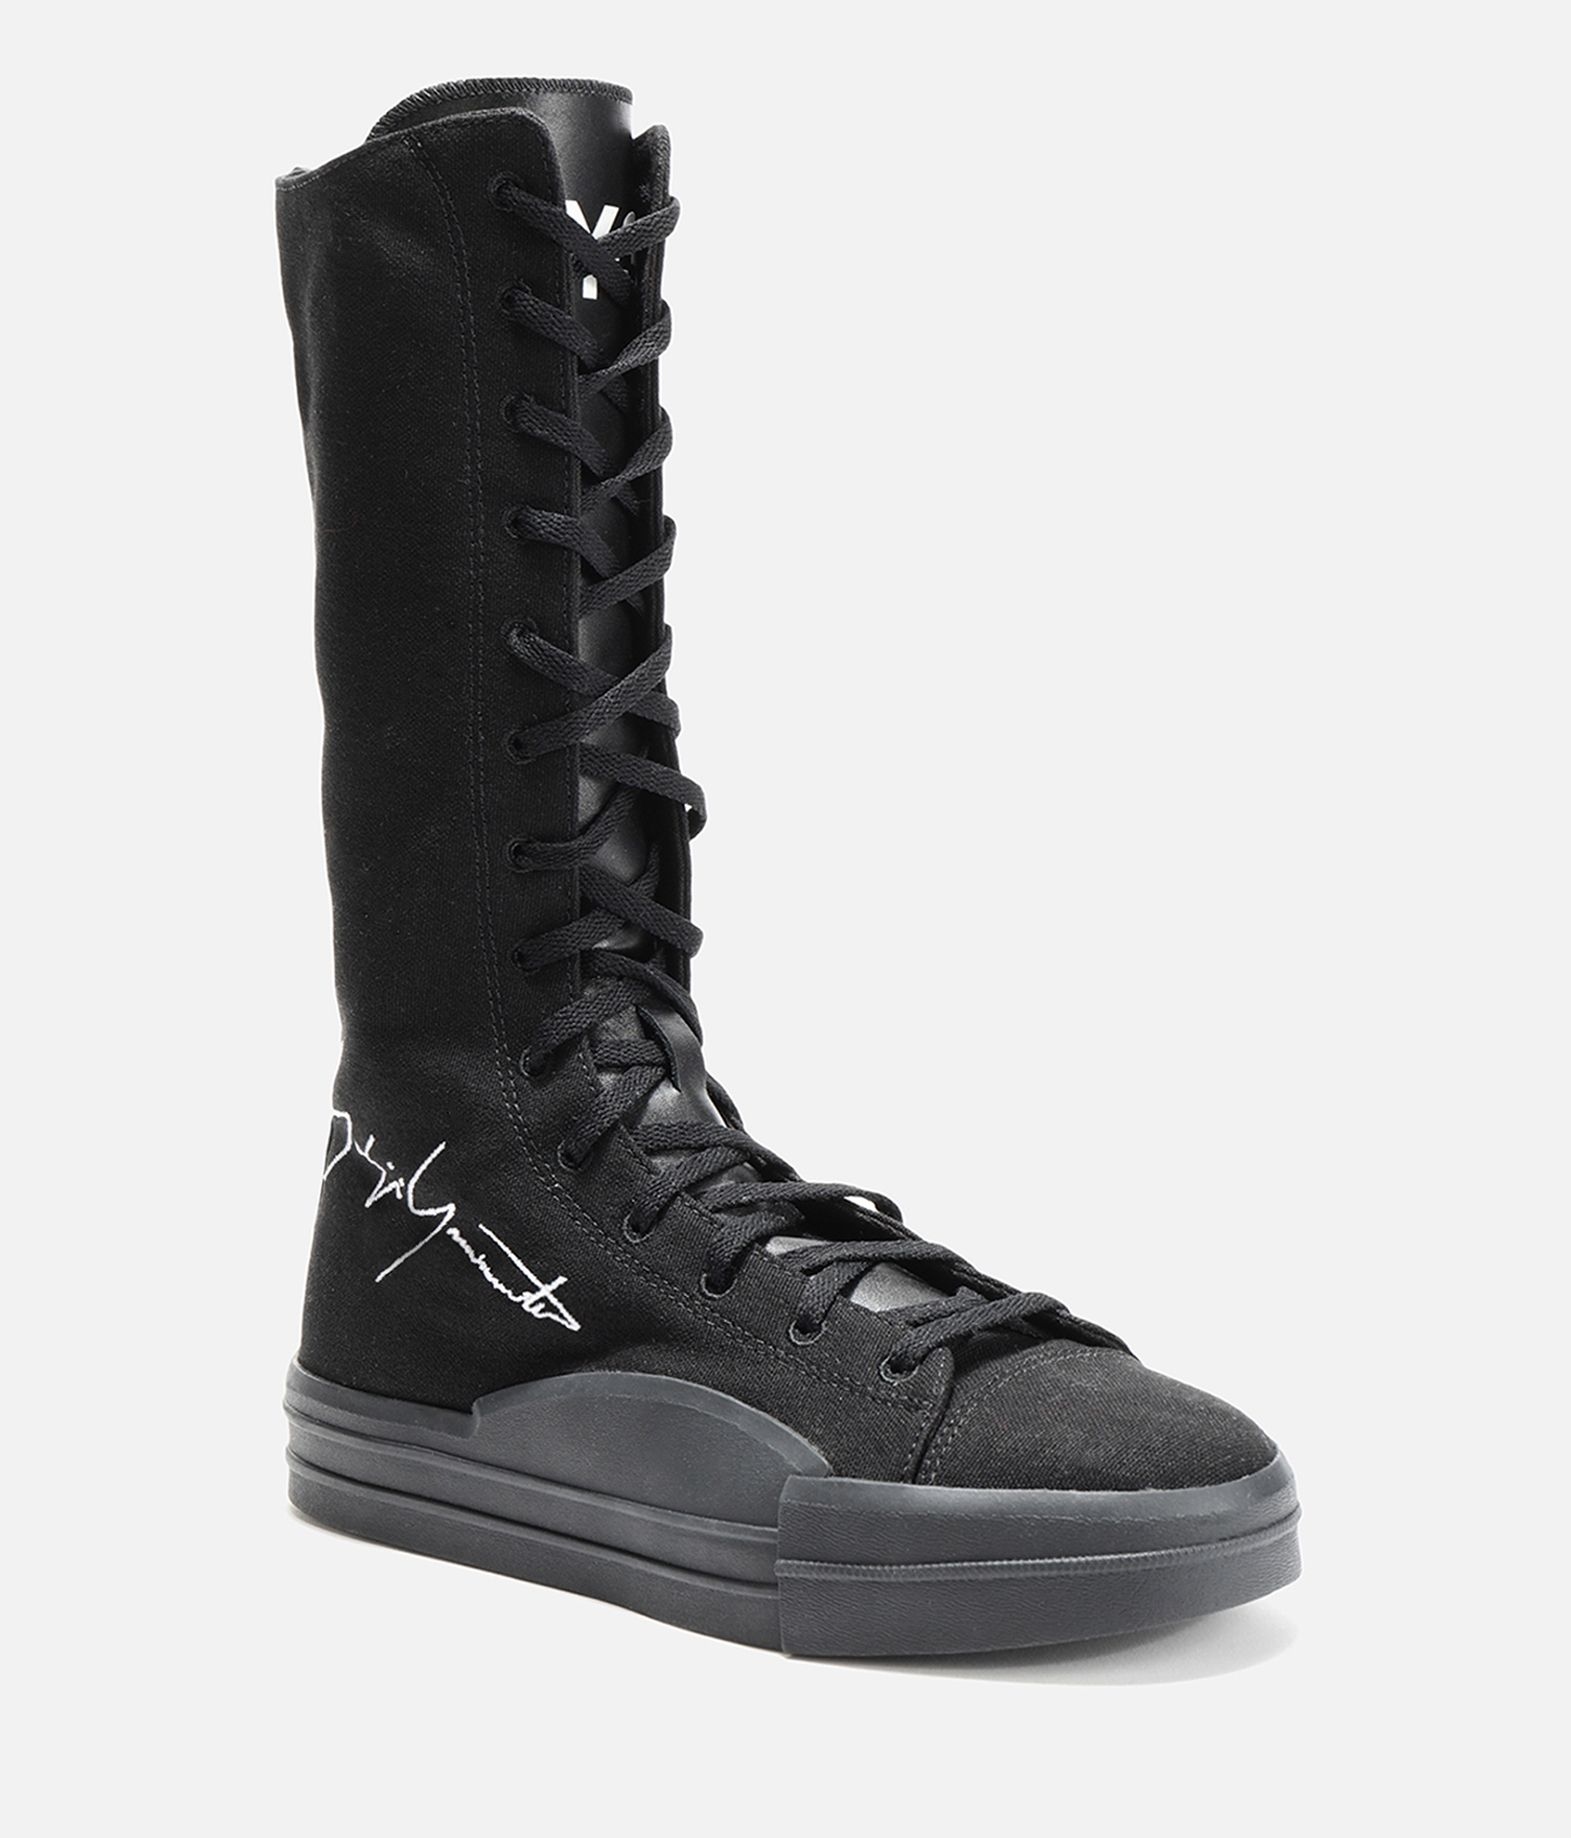 Y-3 Y-3 Yuben Boot High-top sneakers Dame e